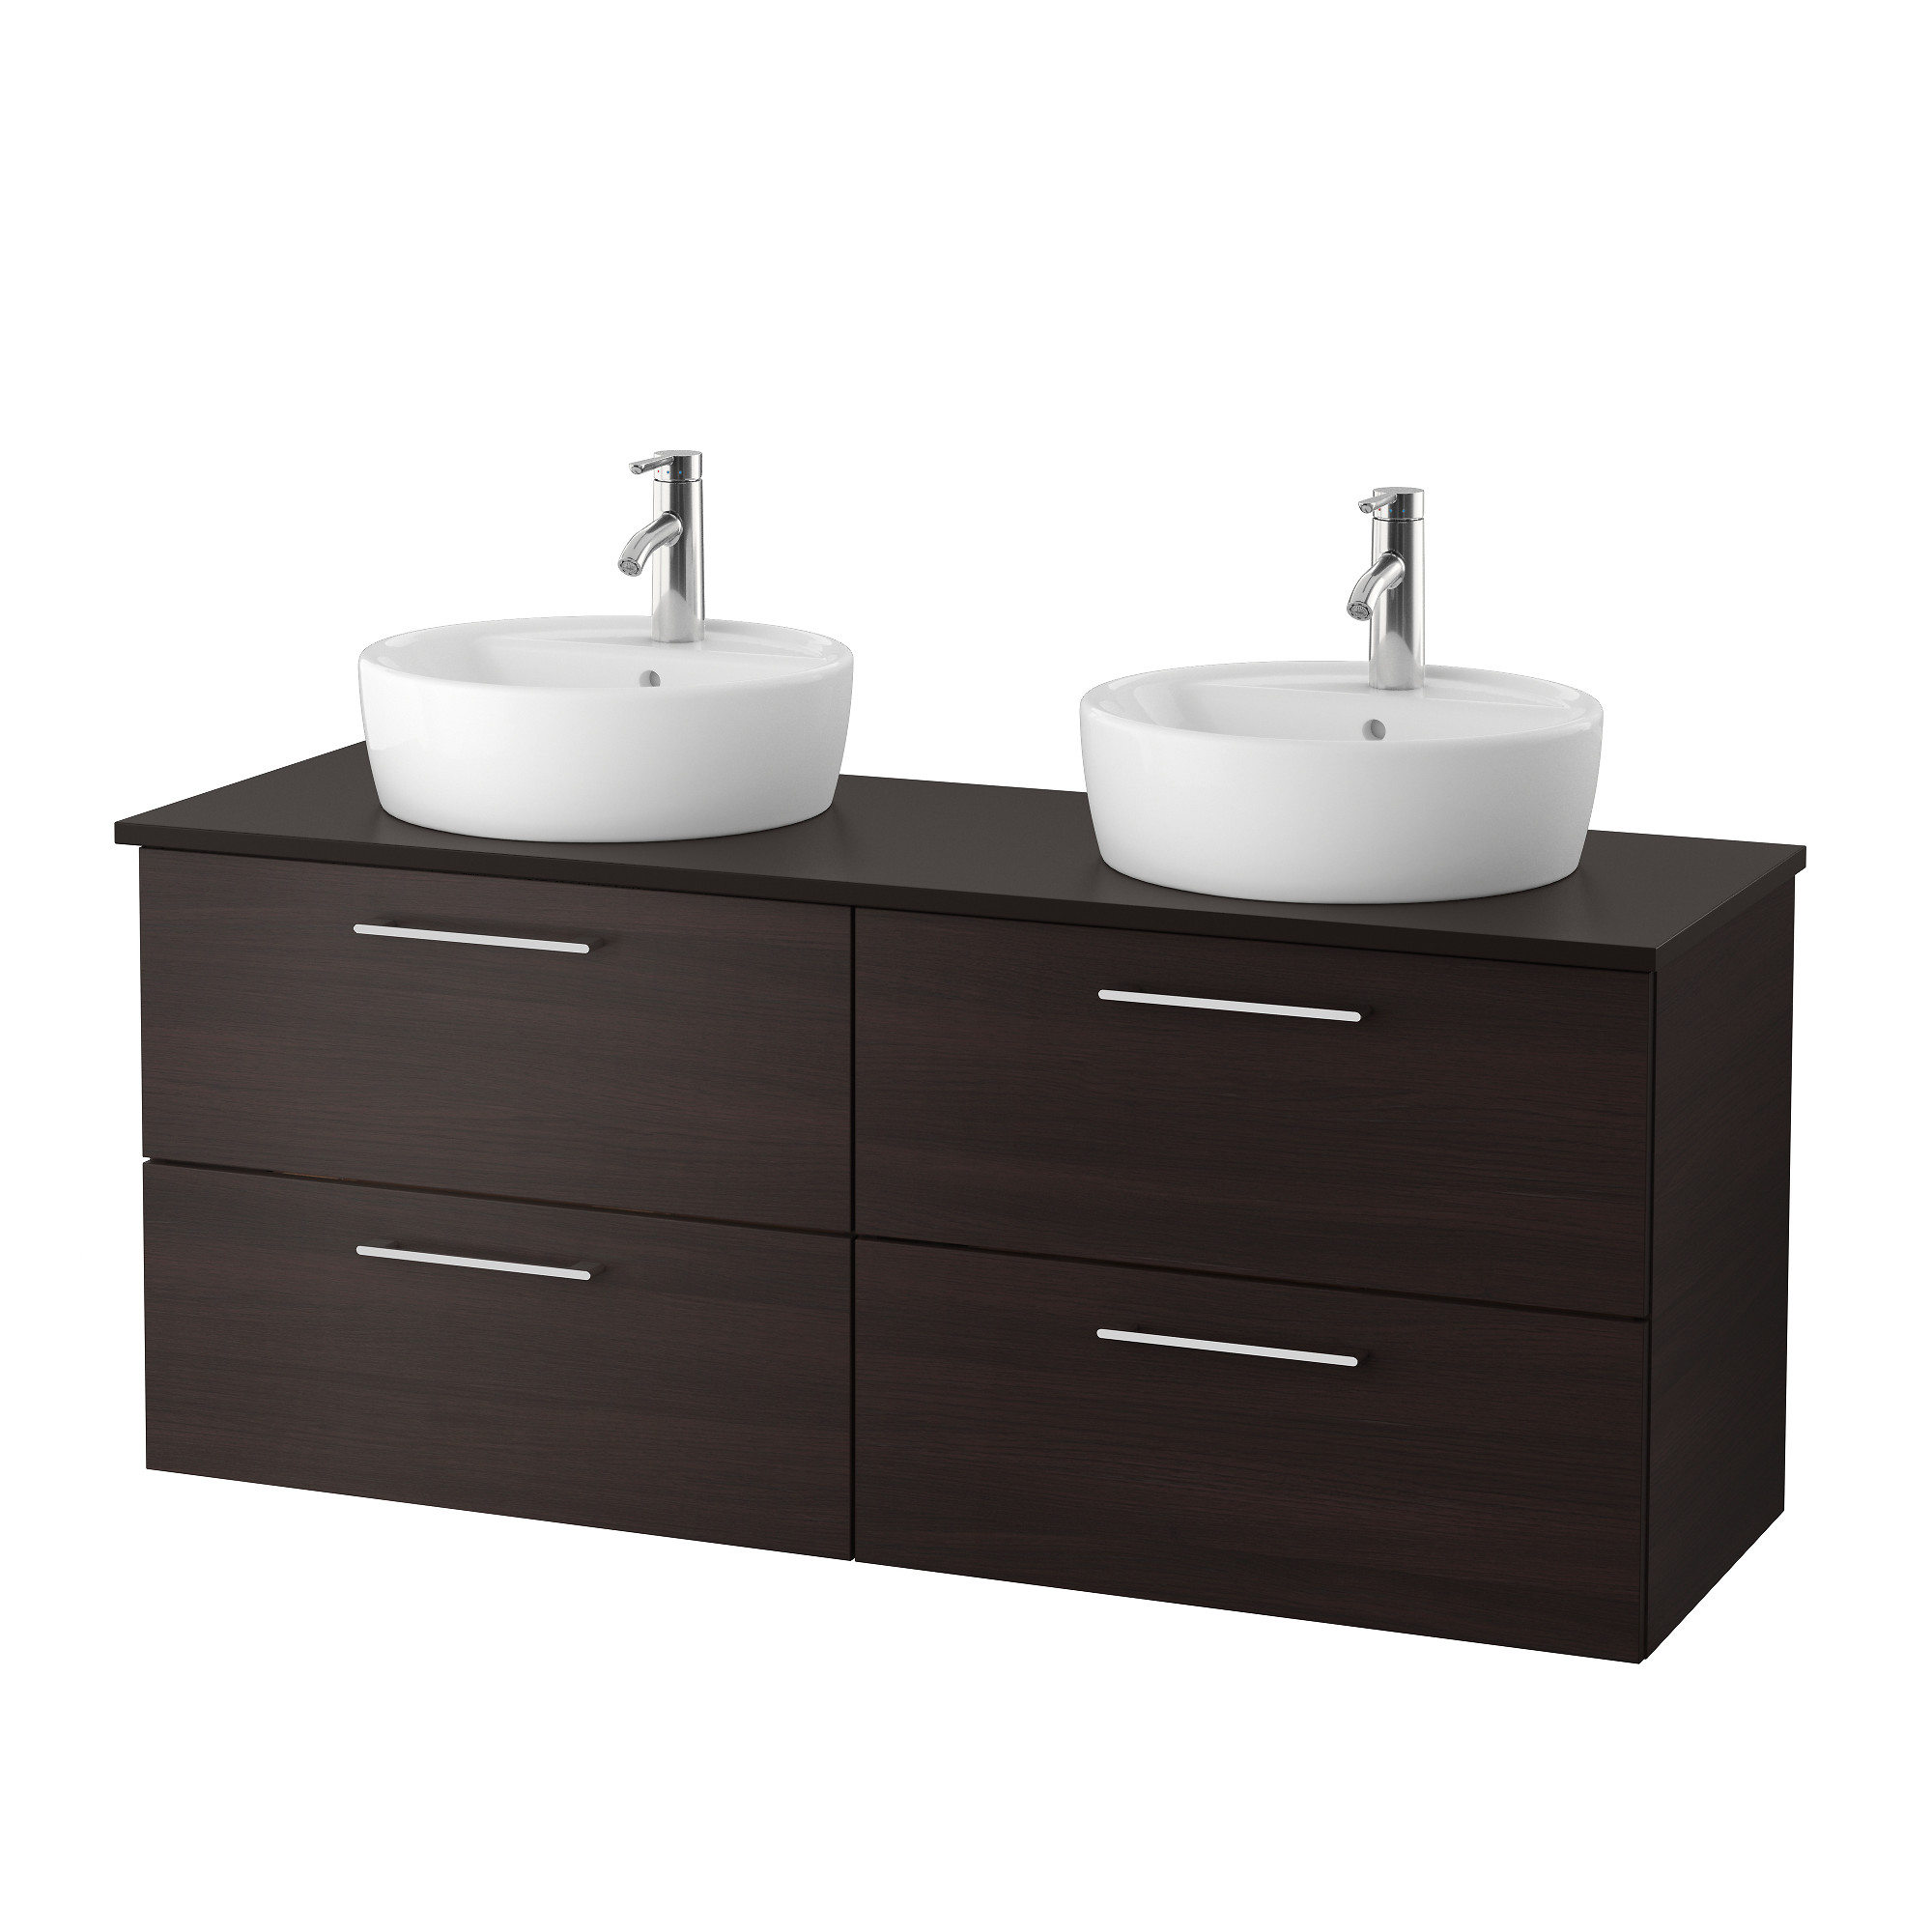 bathroom vanity without sink top. GODMORGON  TOLKEN T RNVIKEN cabinet countertop 19 5 8 sink Bathroom Vanities Countertops IKEA